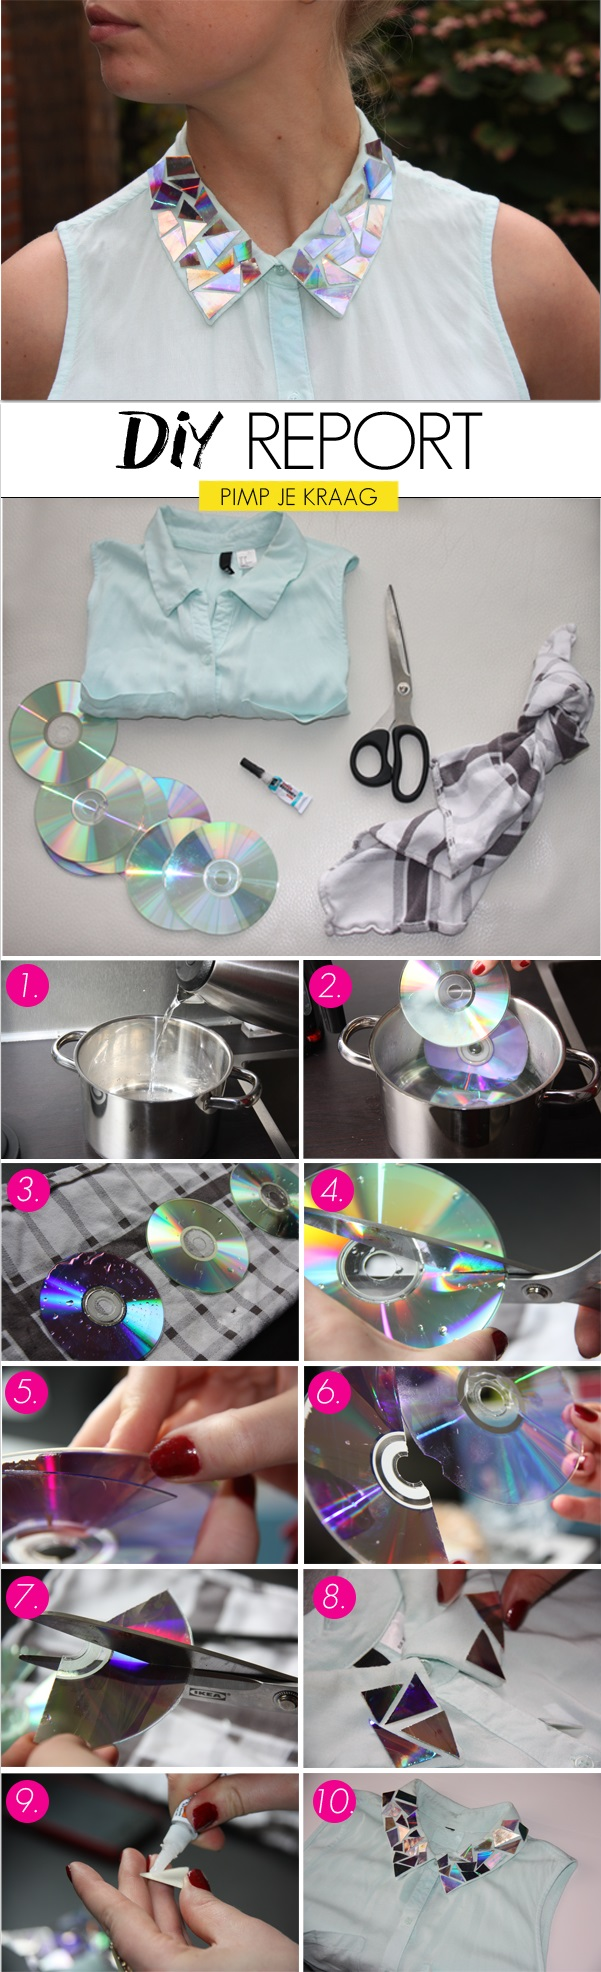 CD's Shining Effect on Your Clothes - DIY